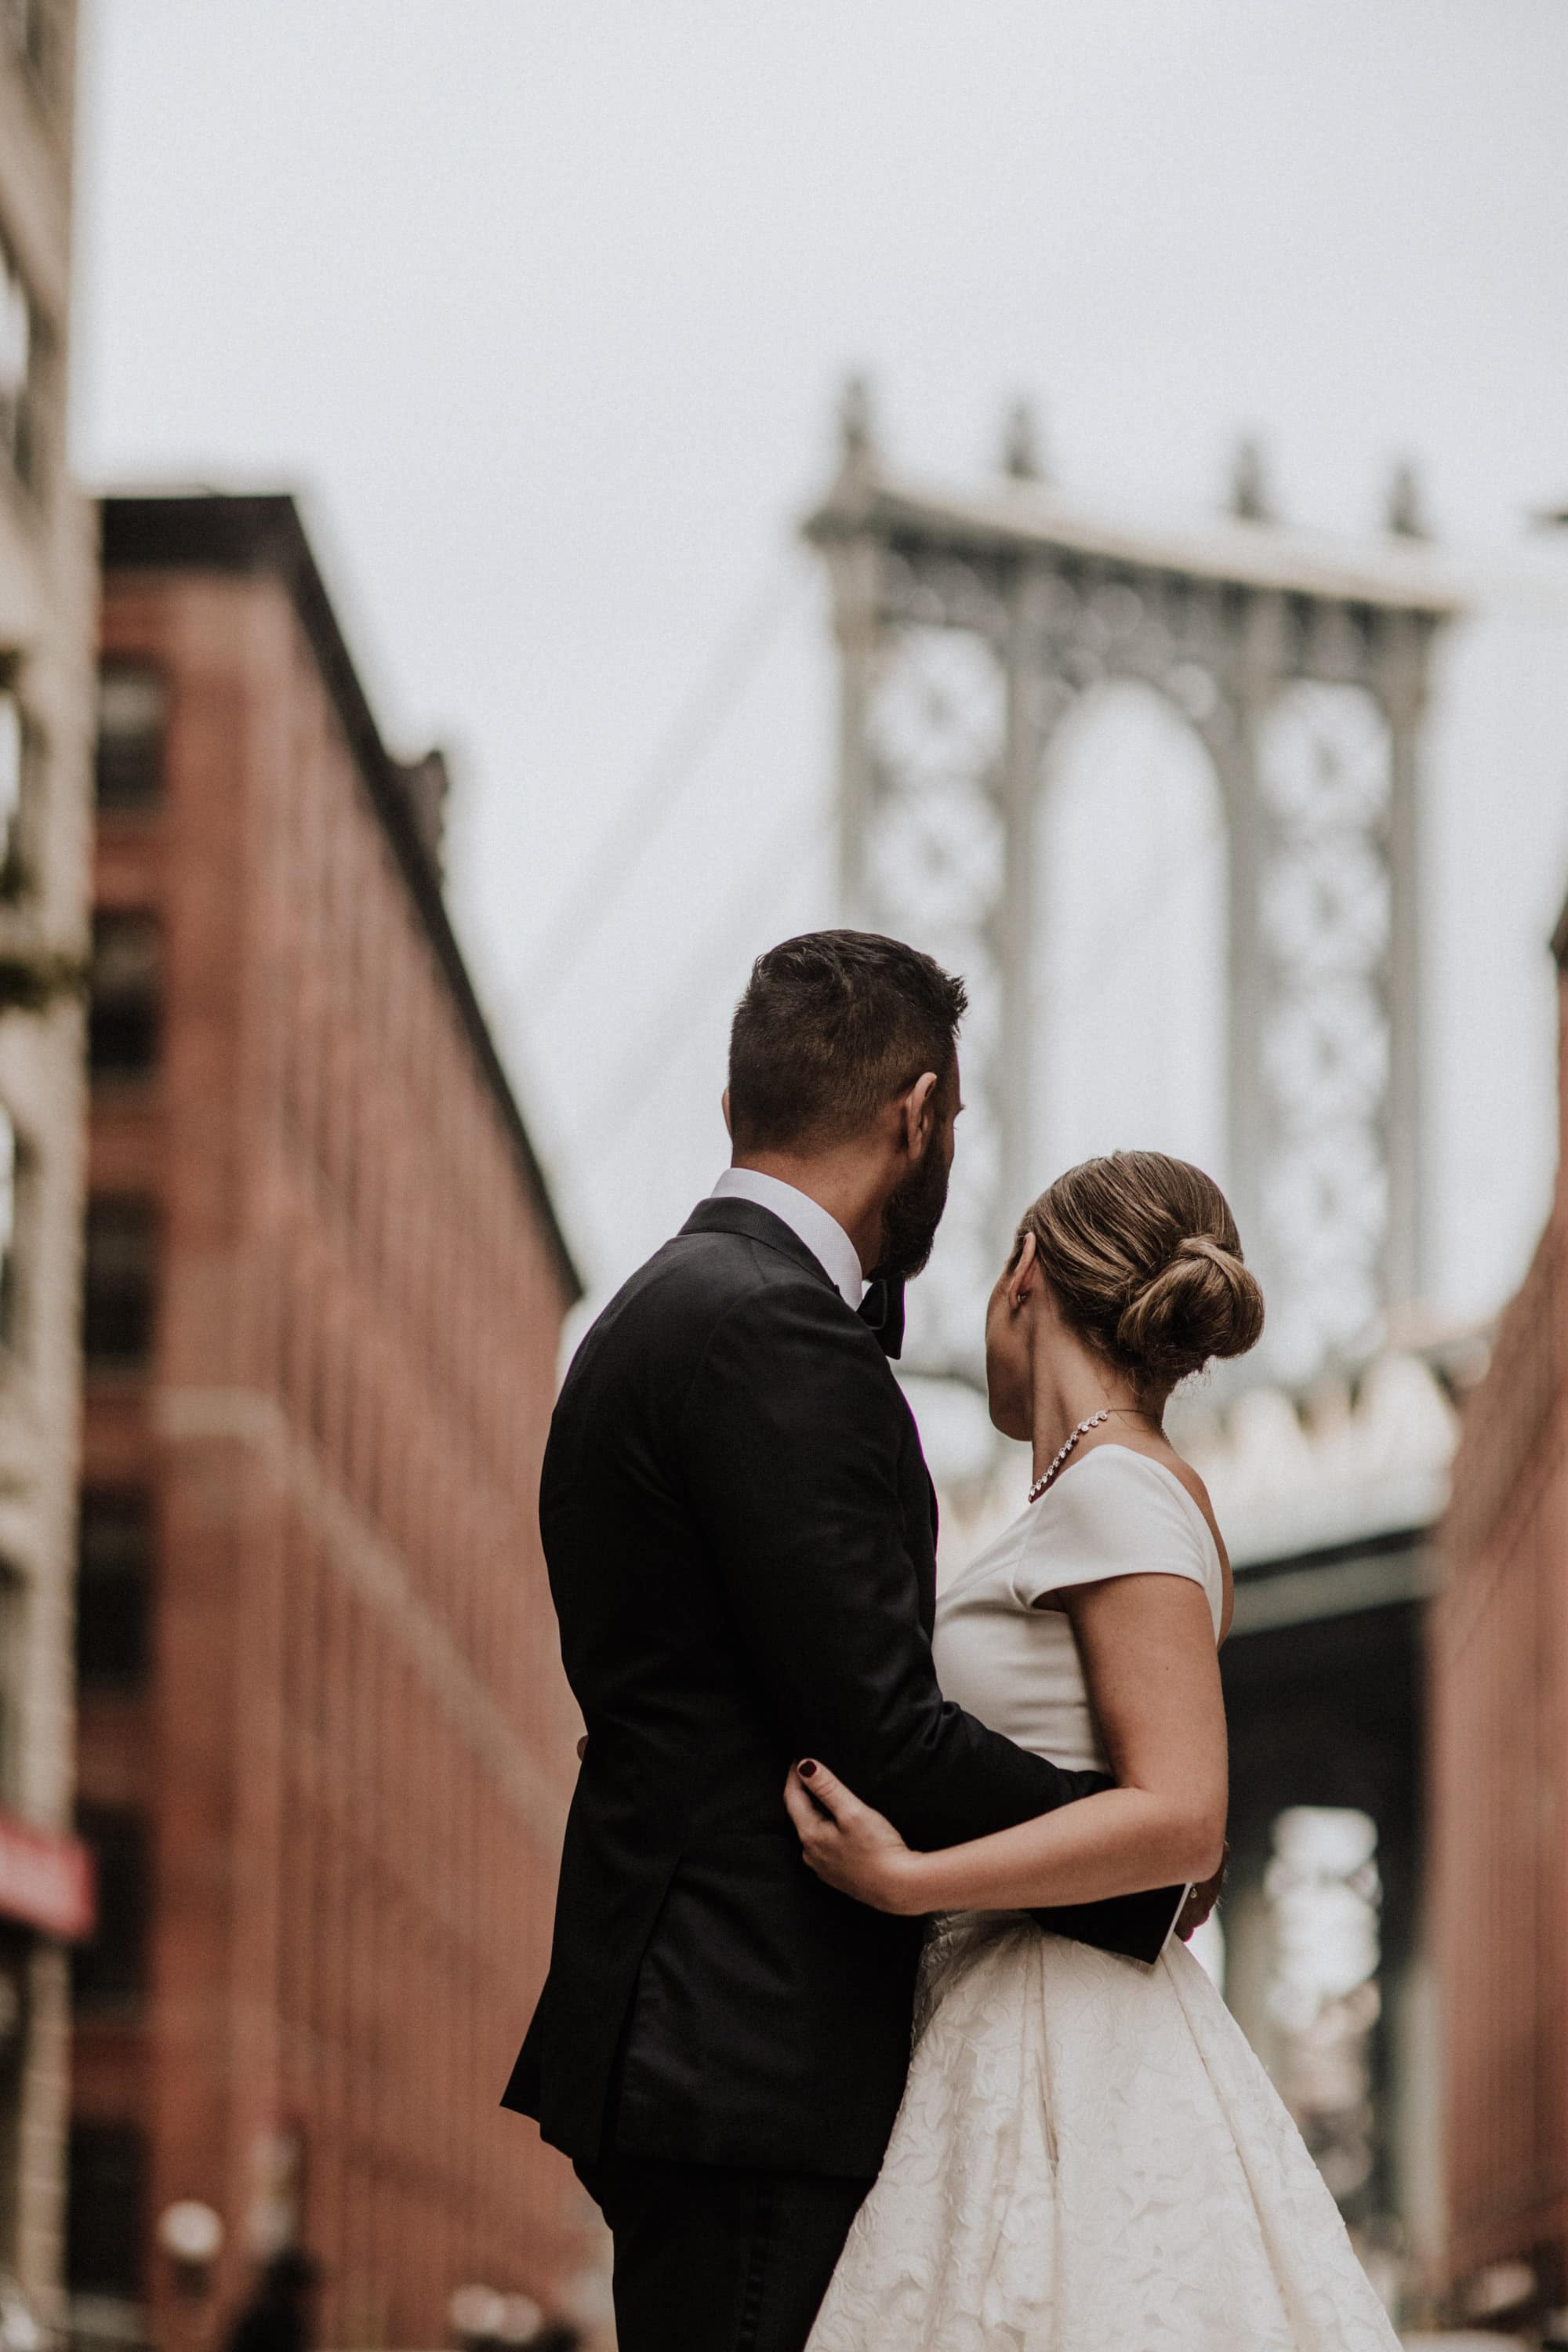 The bride and groom embrace as they look at the Manhattan bridge in the distance, in Dumbo, Booklyn, New York City. Wedding Photographer Brent Calis.